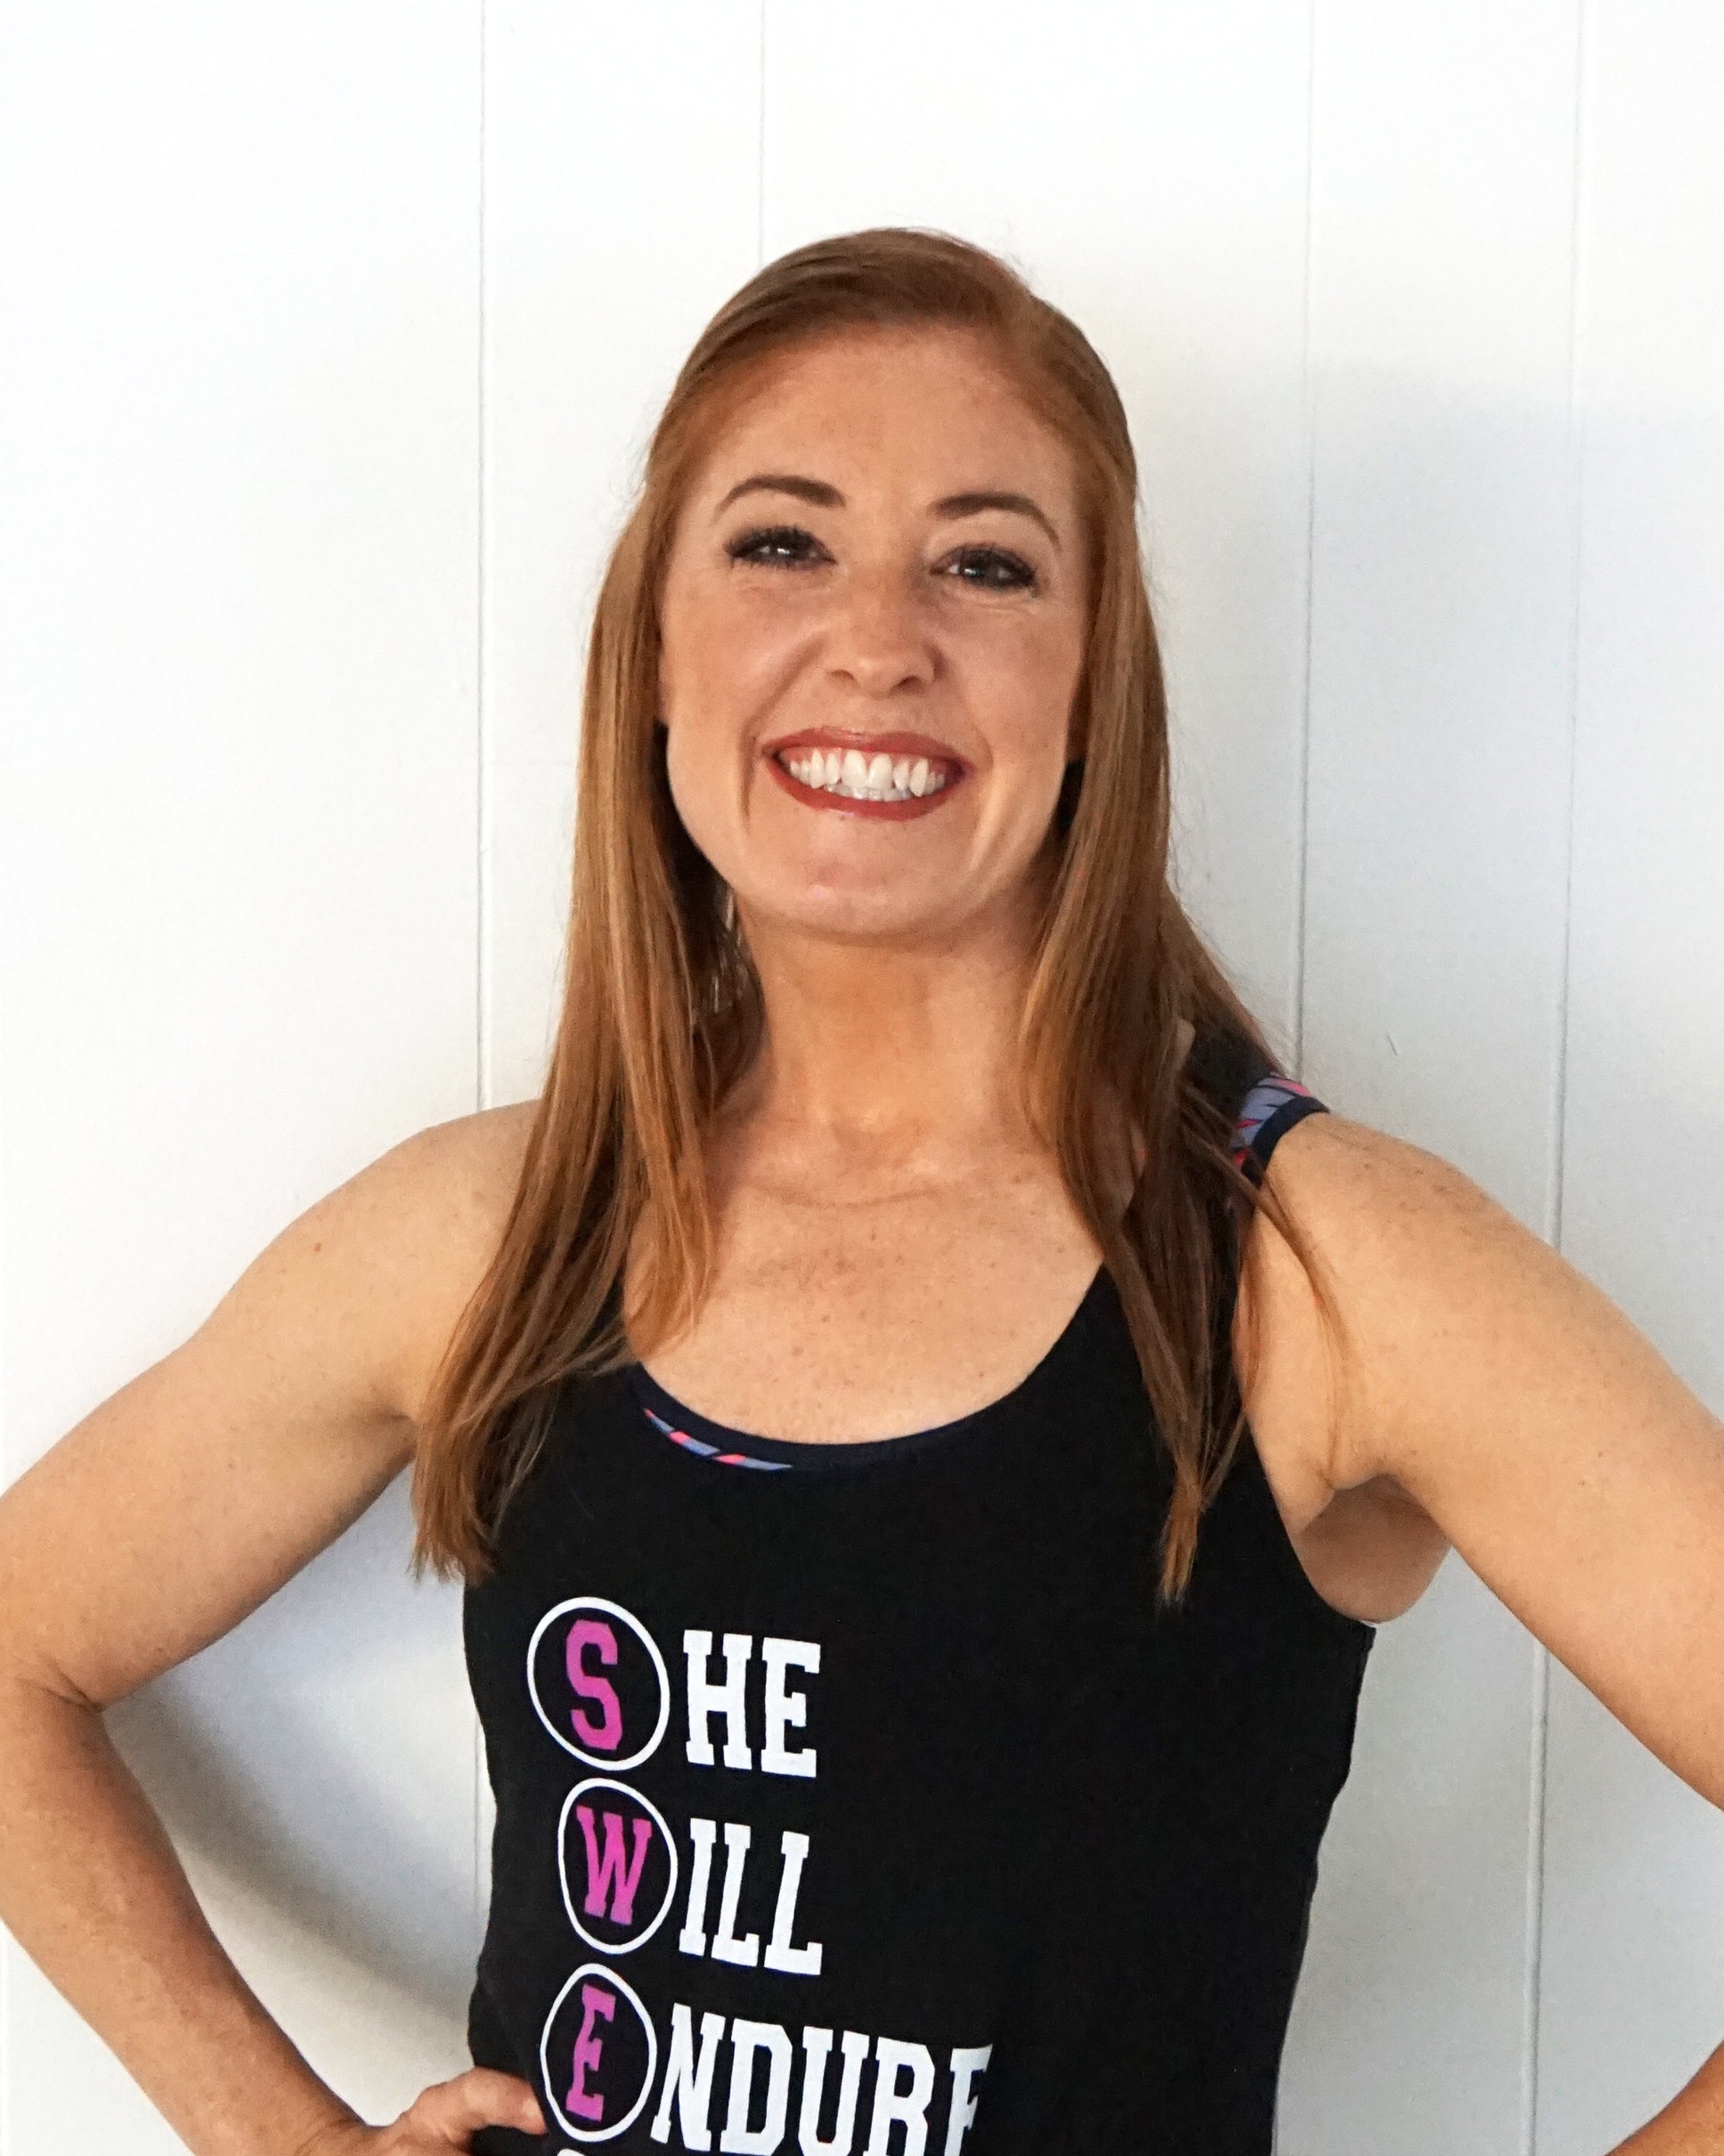 SWEAT INSTRUCTOR AND OWNER MEGAIN THIEMAN